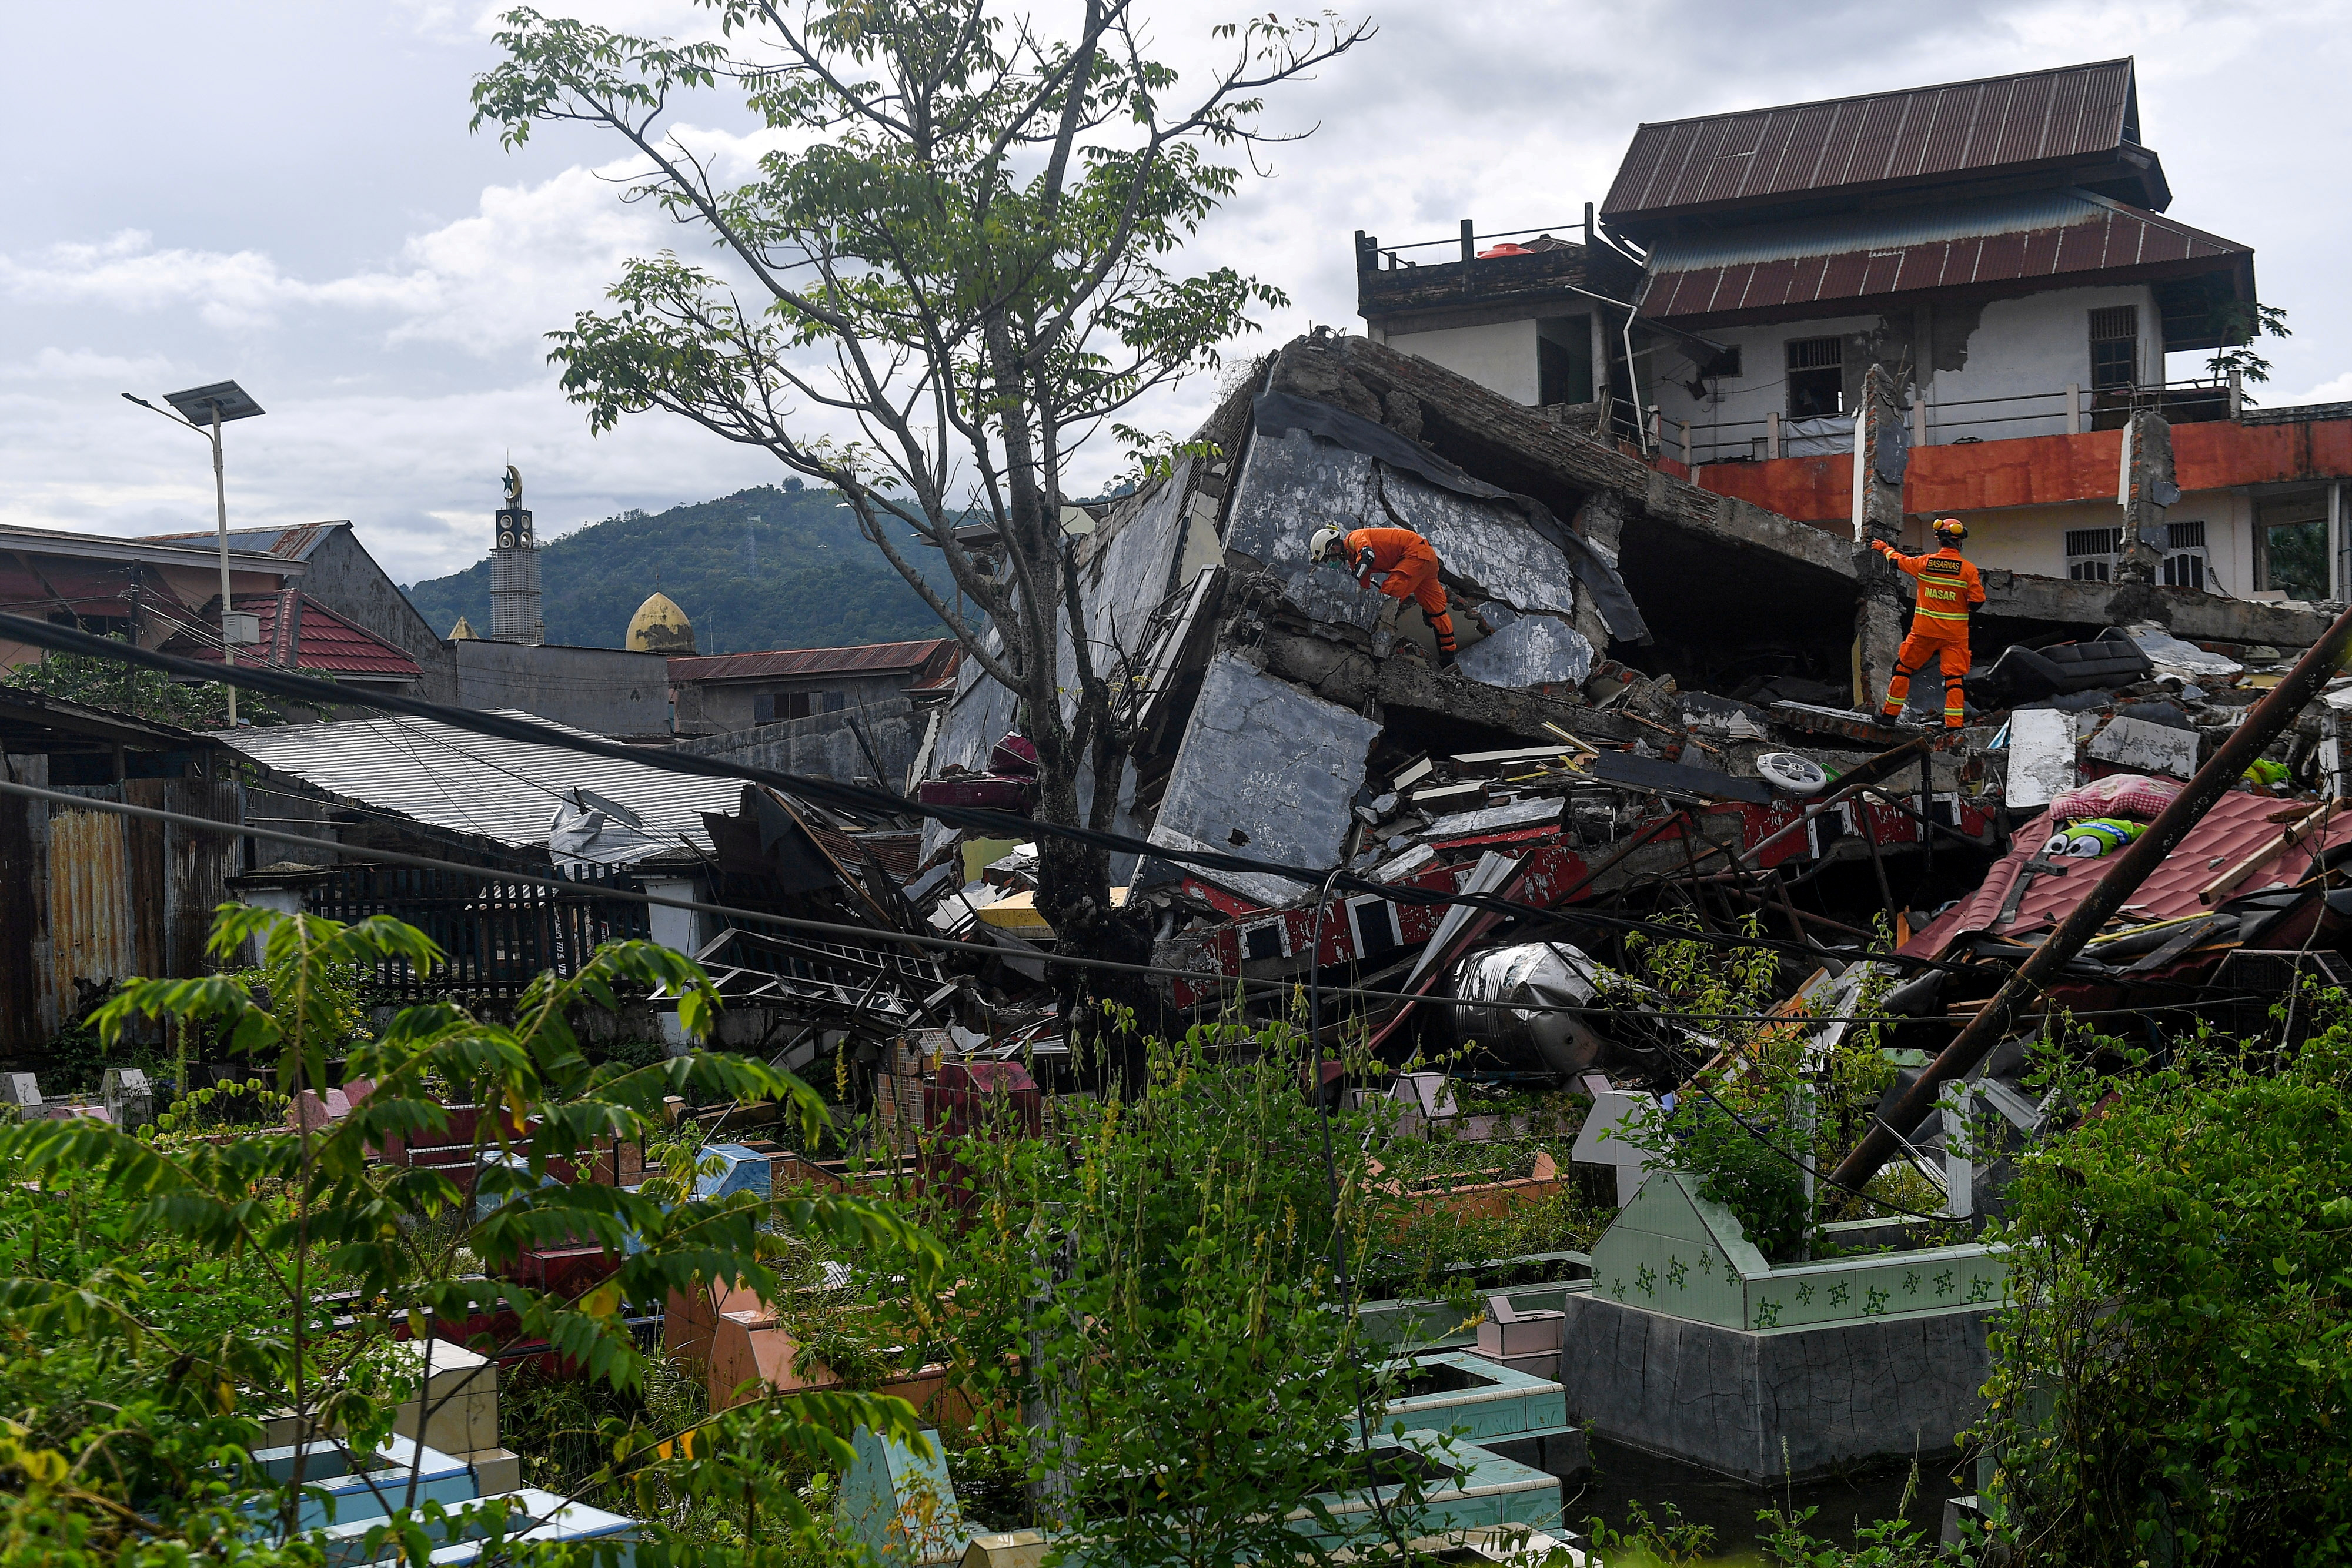 Search and rescue personnel inspect a collapsed building following an earthquake in Mamuju, West Sulawesi province, Indonesia, January 16, 2021. Sigid Kurniawan/Antara Foto via REUTERS